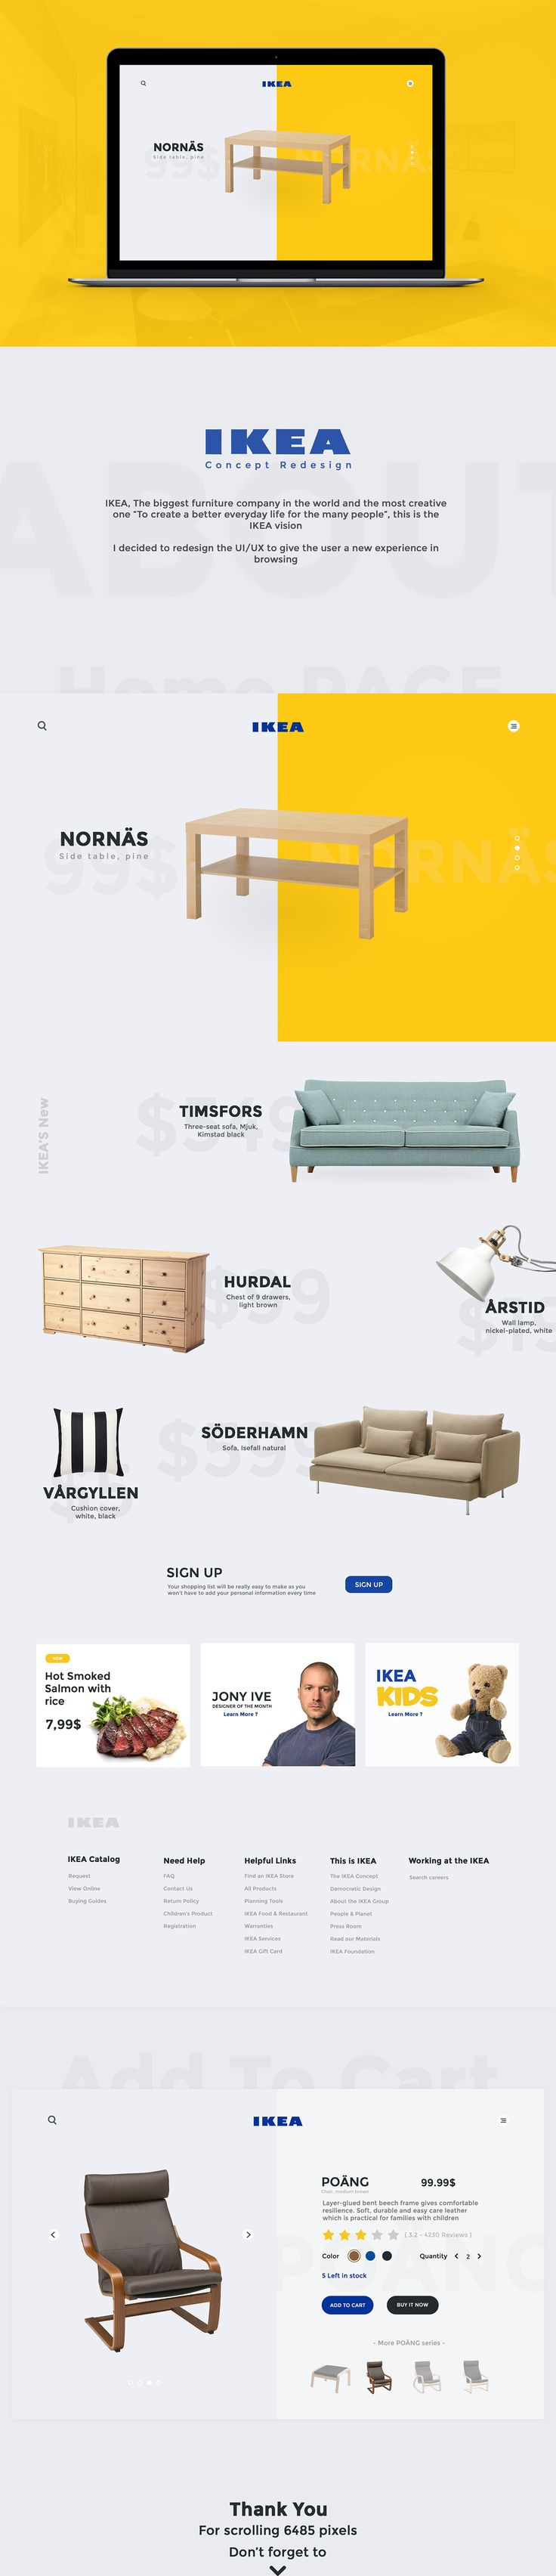 IKEA Concept Redesign on Behance